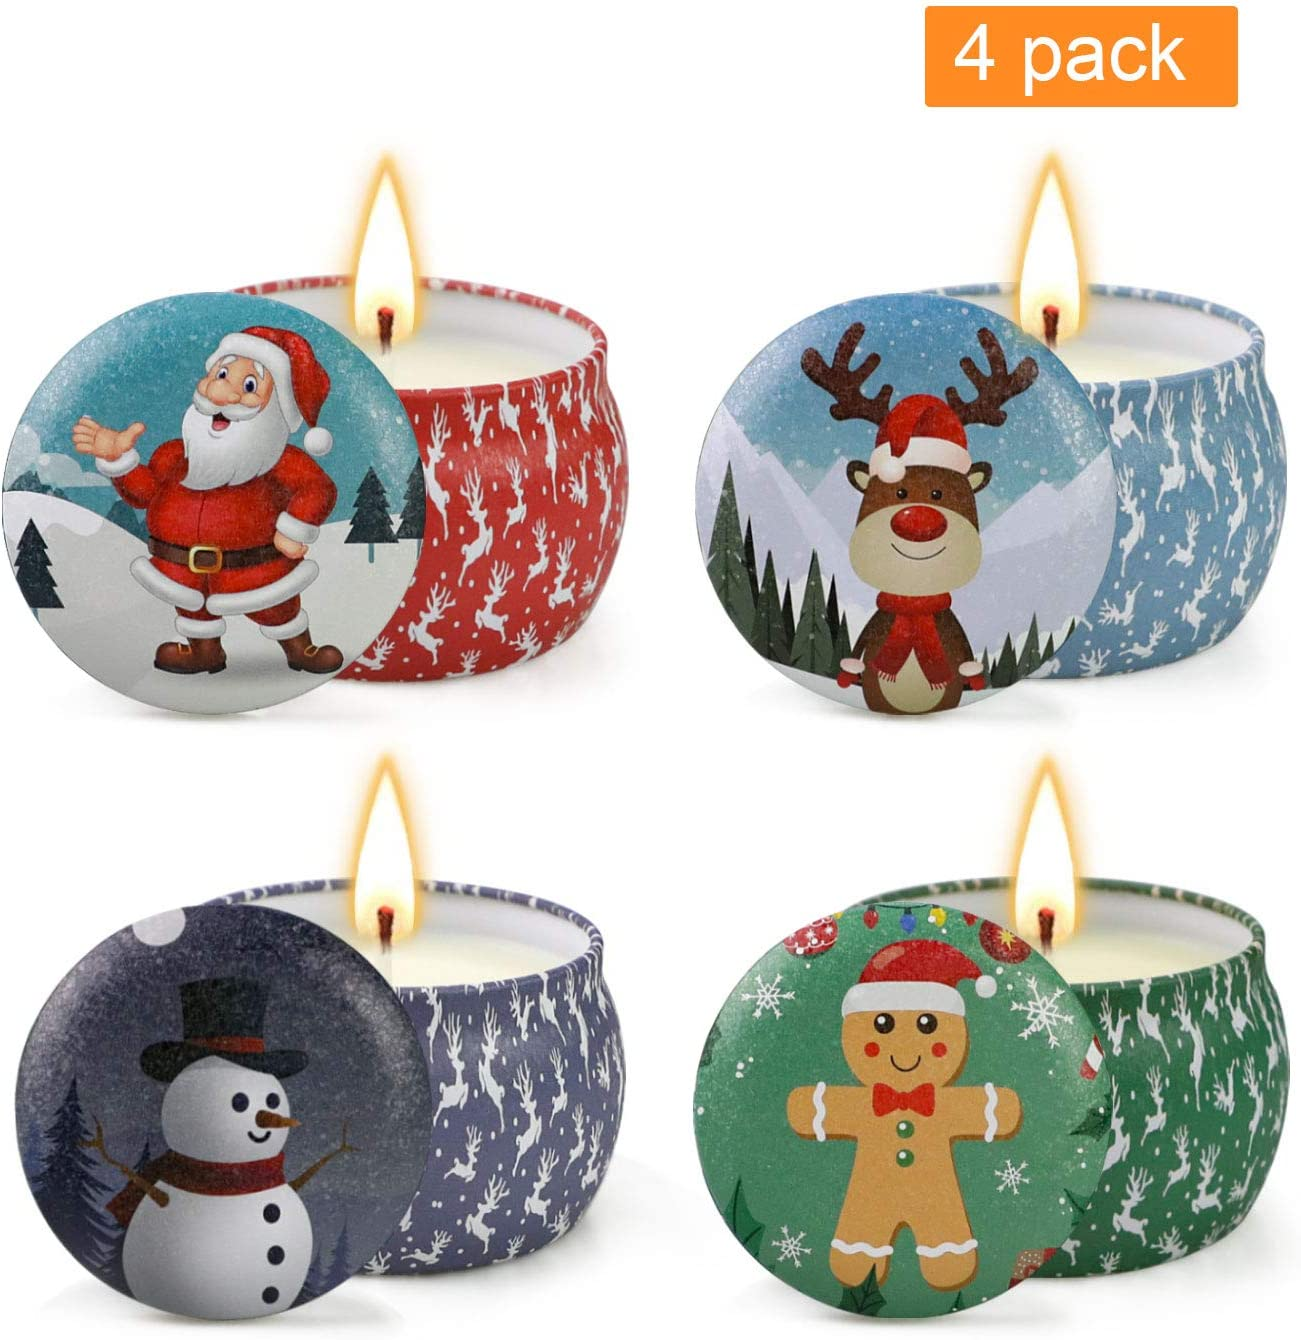 YMing Christmas Scented Candles Gift Sets of 4  Natural Soy Wax Aromatherapy Candles  Portable Travel Tin Candle Gift for Family or Friends